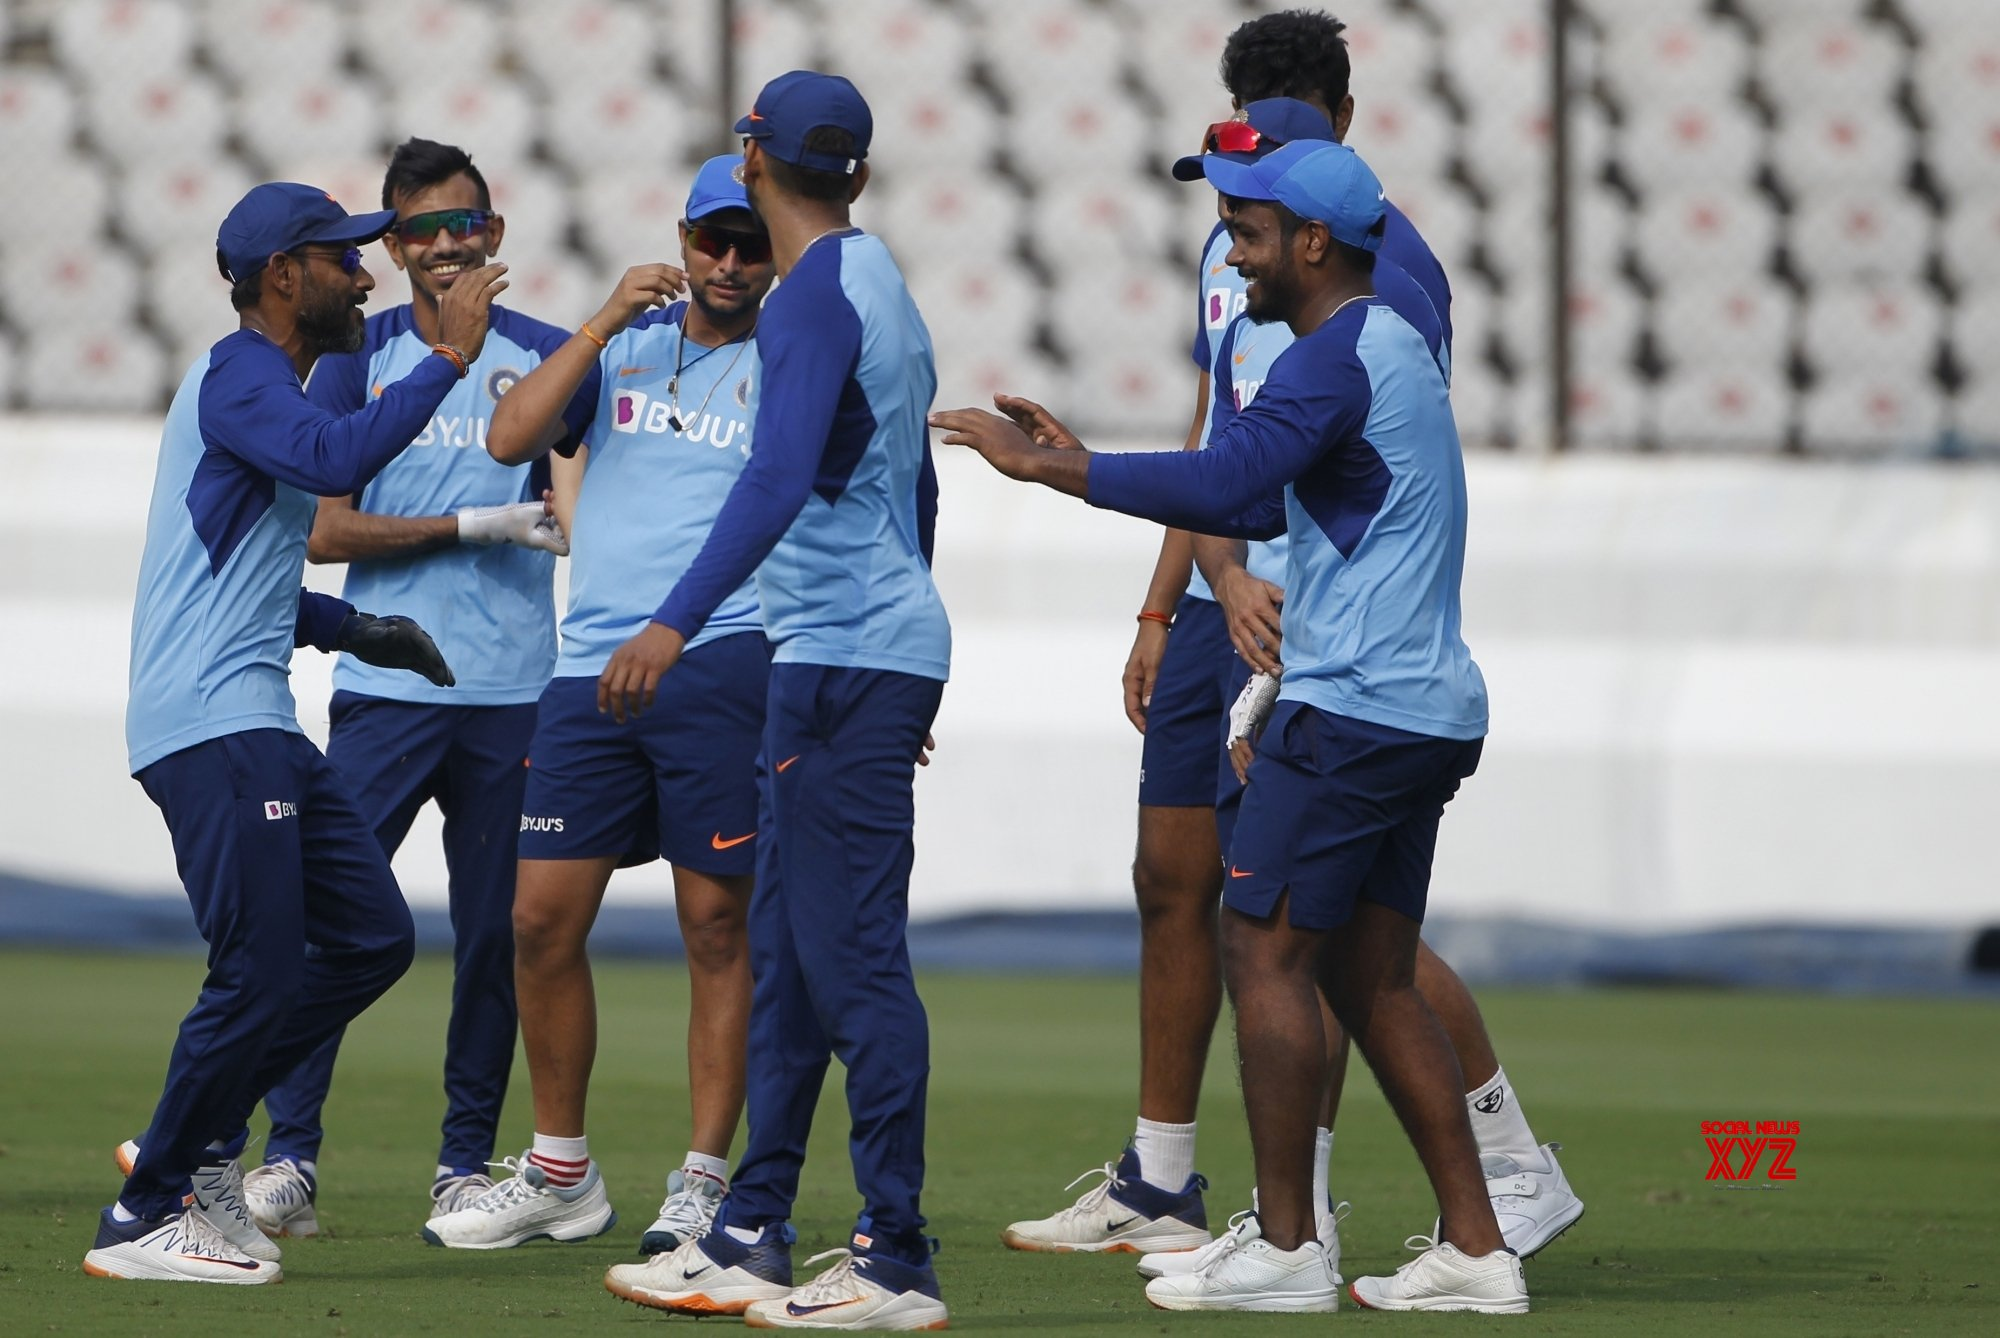 Hyderabad: India practice session (Batch - 2) #Gallery